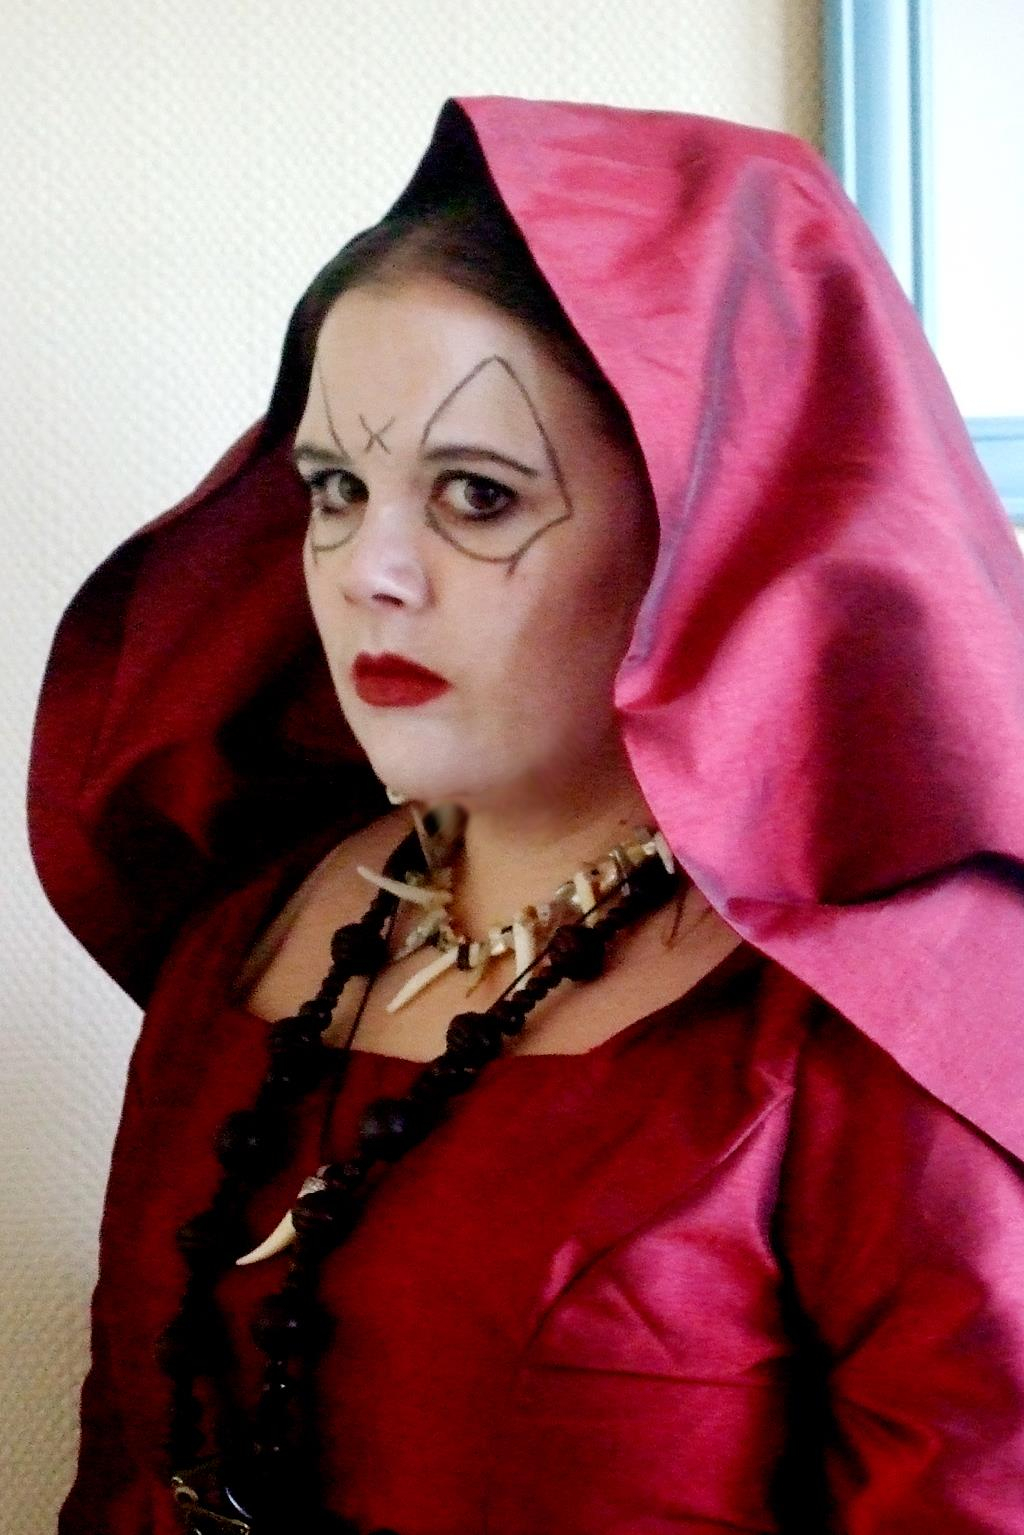 Head and shoulders shot of a woman, wearing a deep red satin costume with a hood. Her face is painted white, with black markings